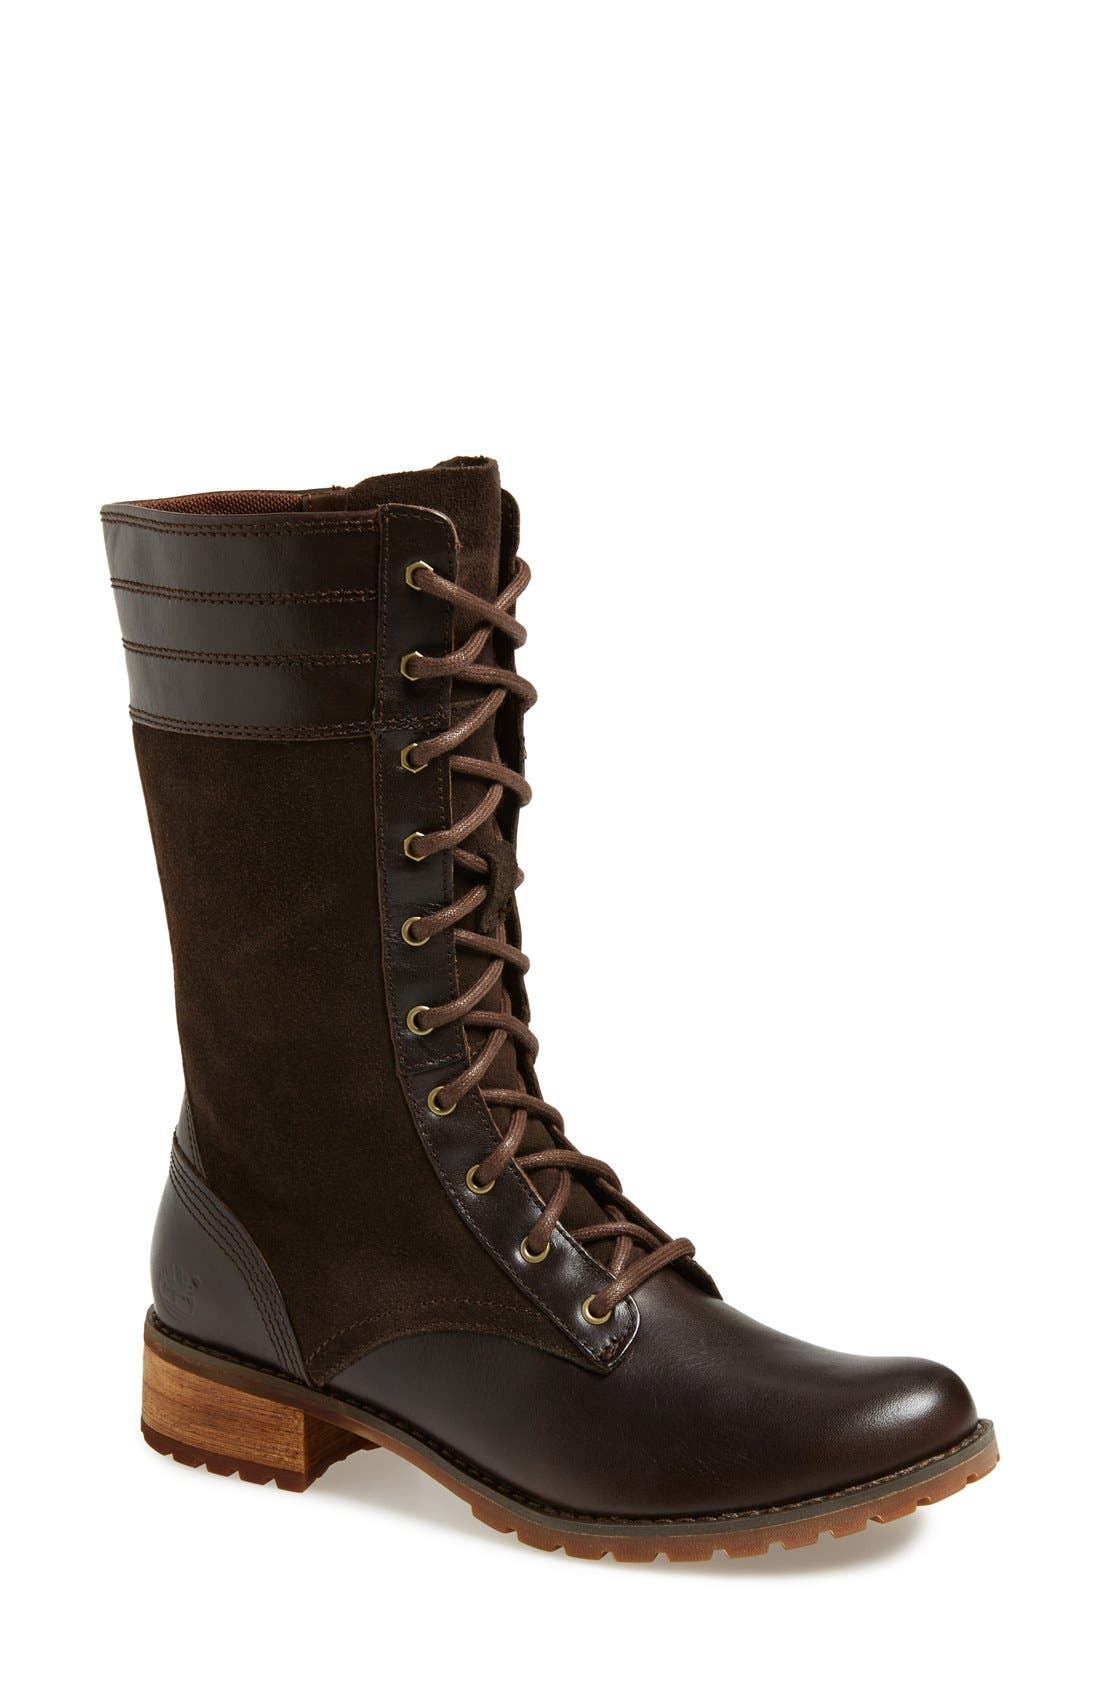 Alternate Image 1 Selected - Timberland 'Bethel' Boot (Women)